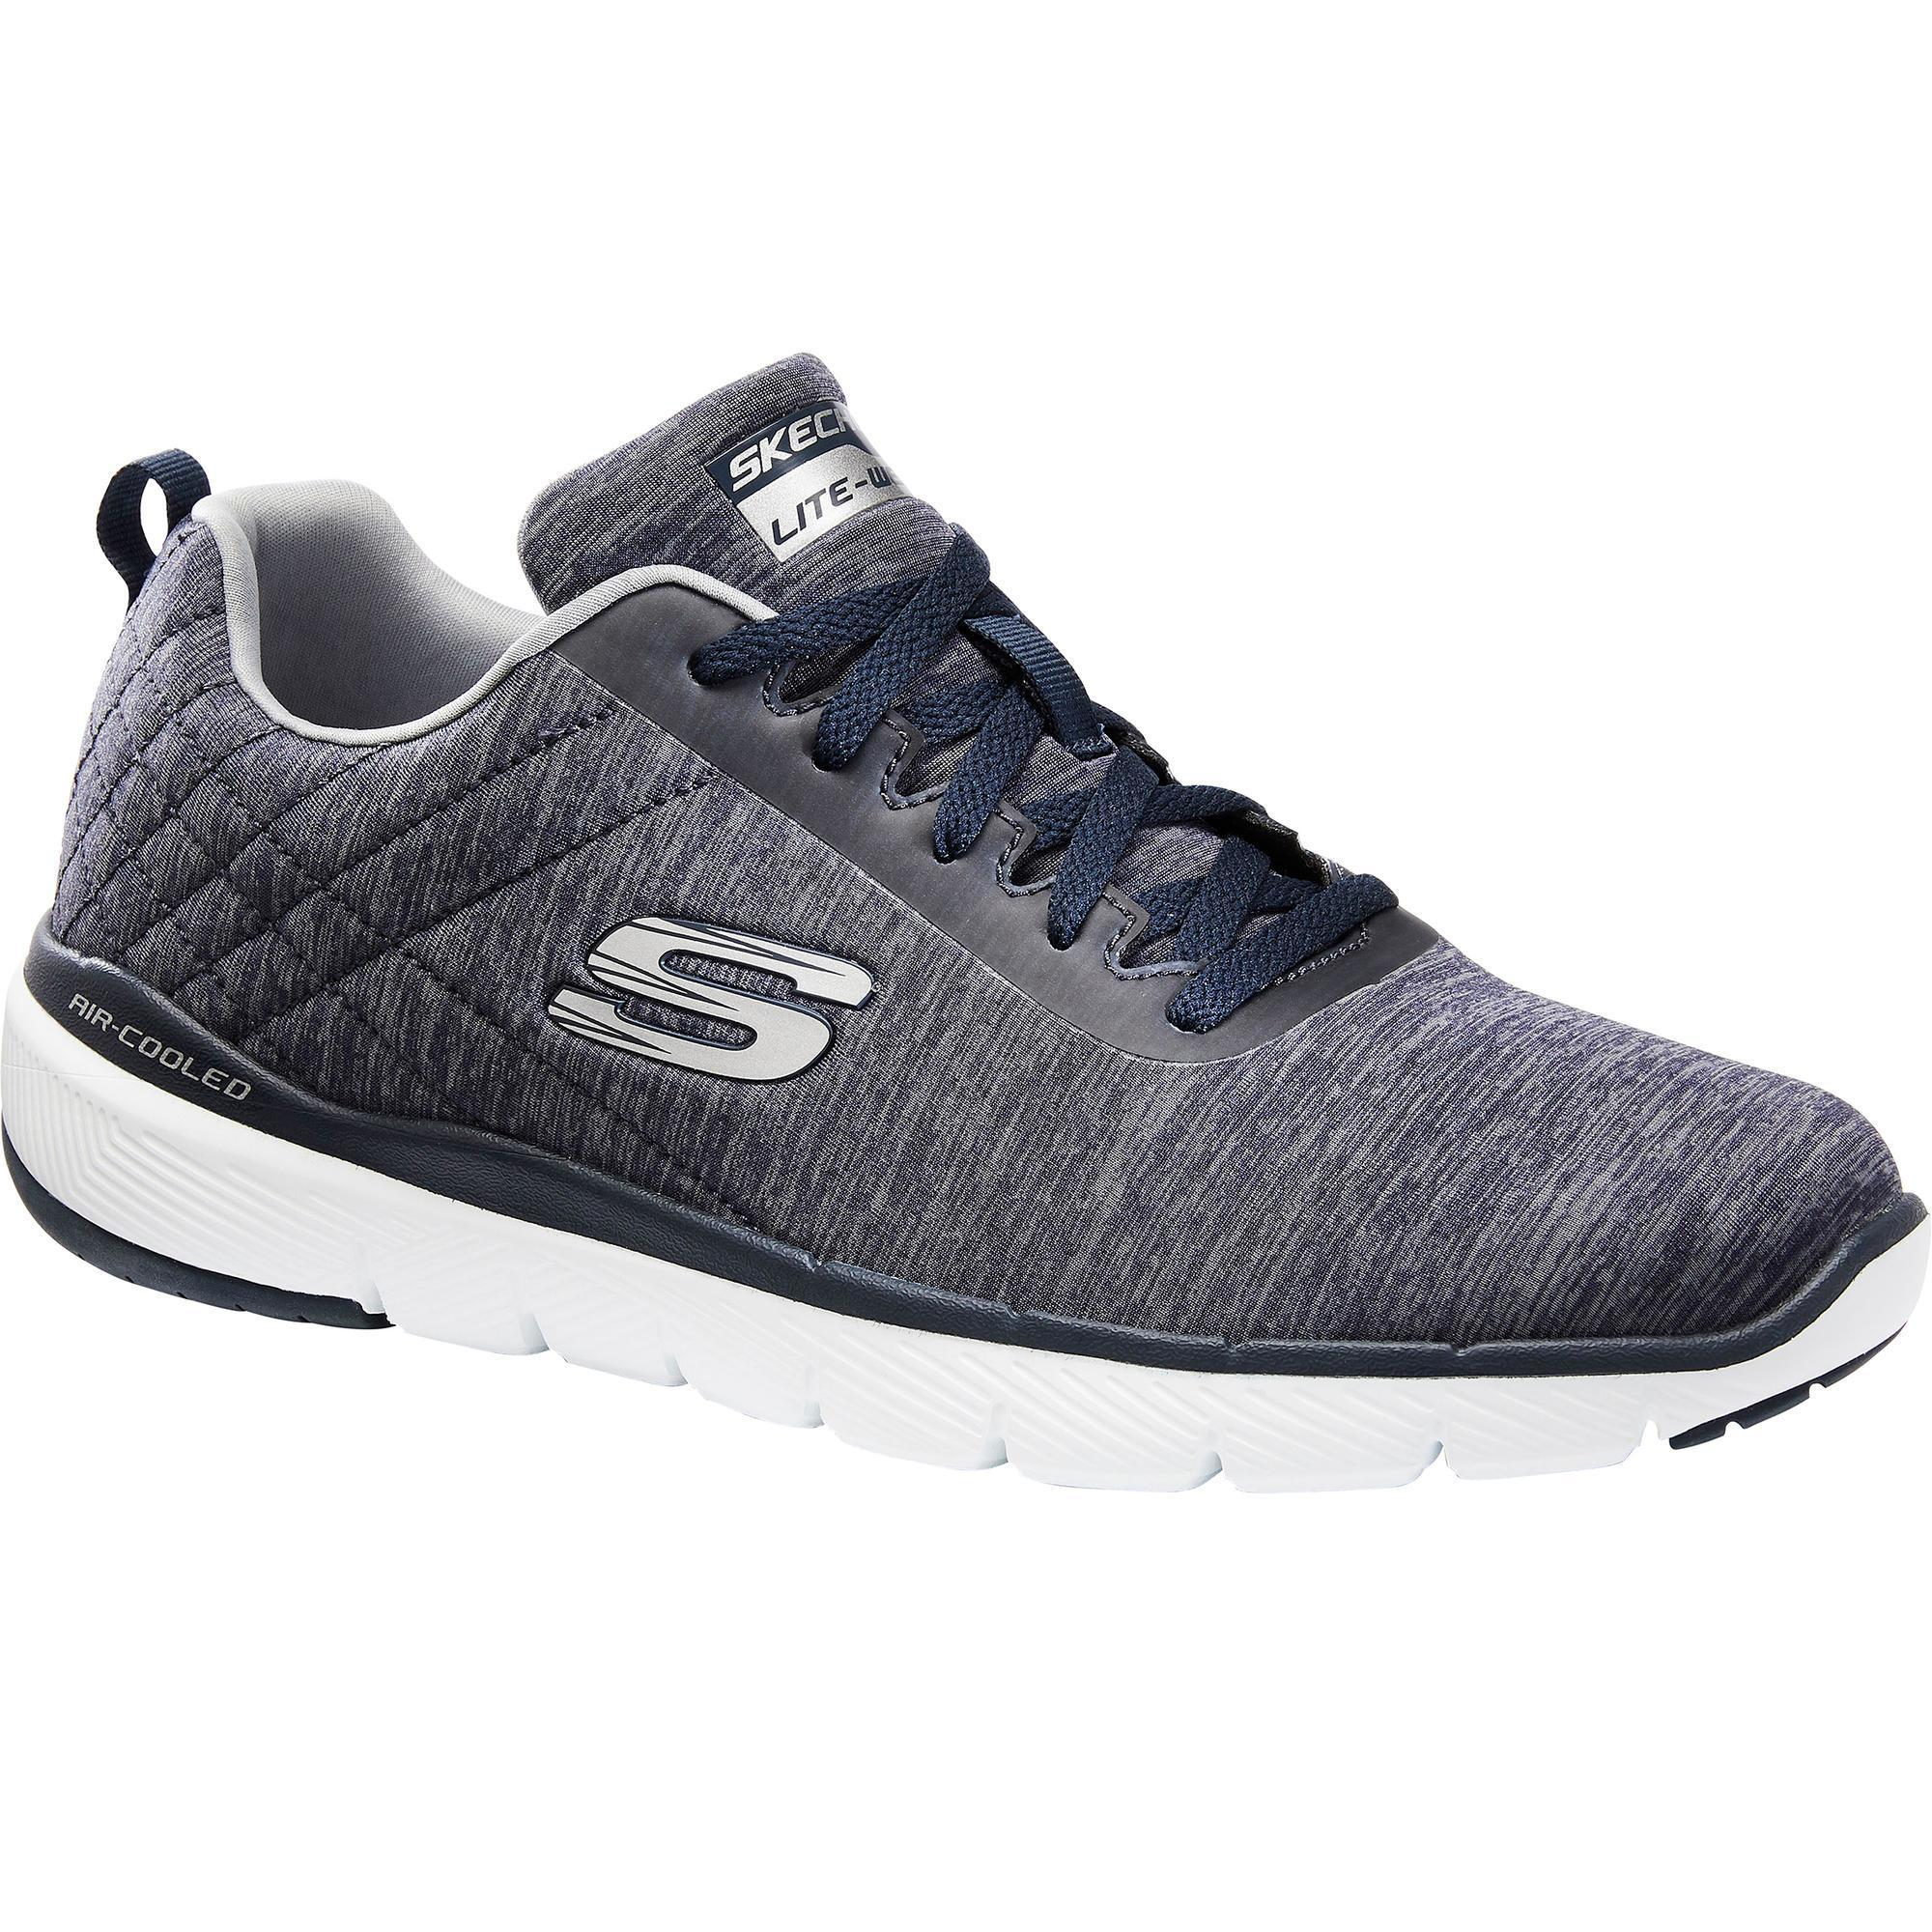 NEW BALANCE 500 homme chaussures casual Sneakers marche